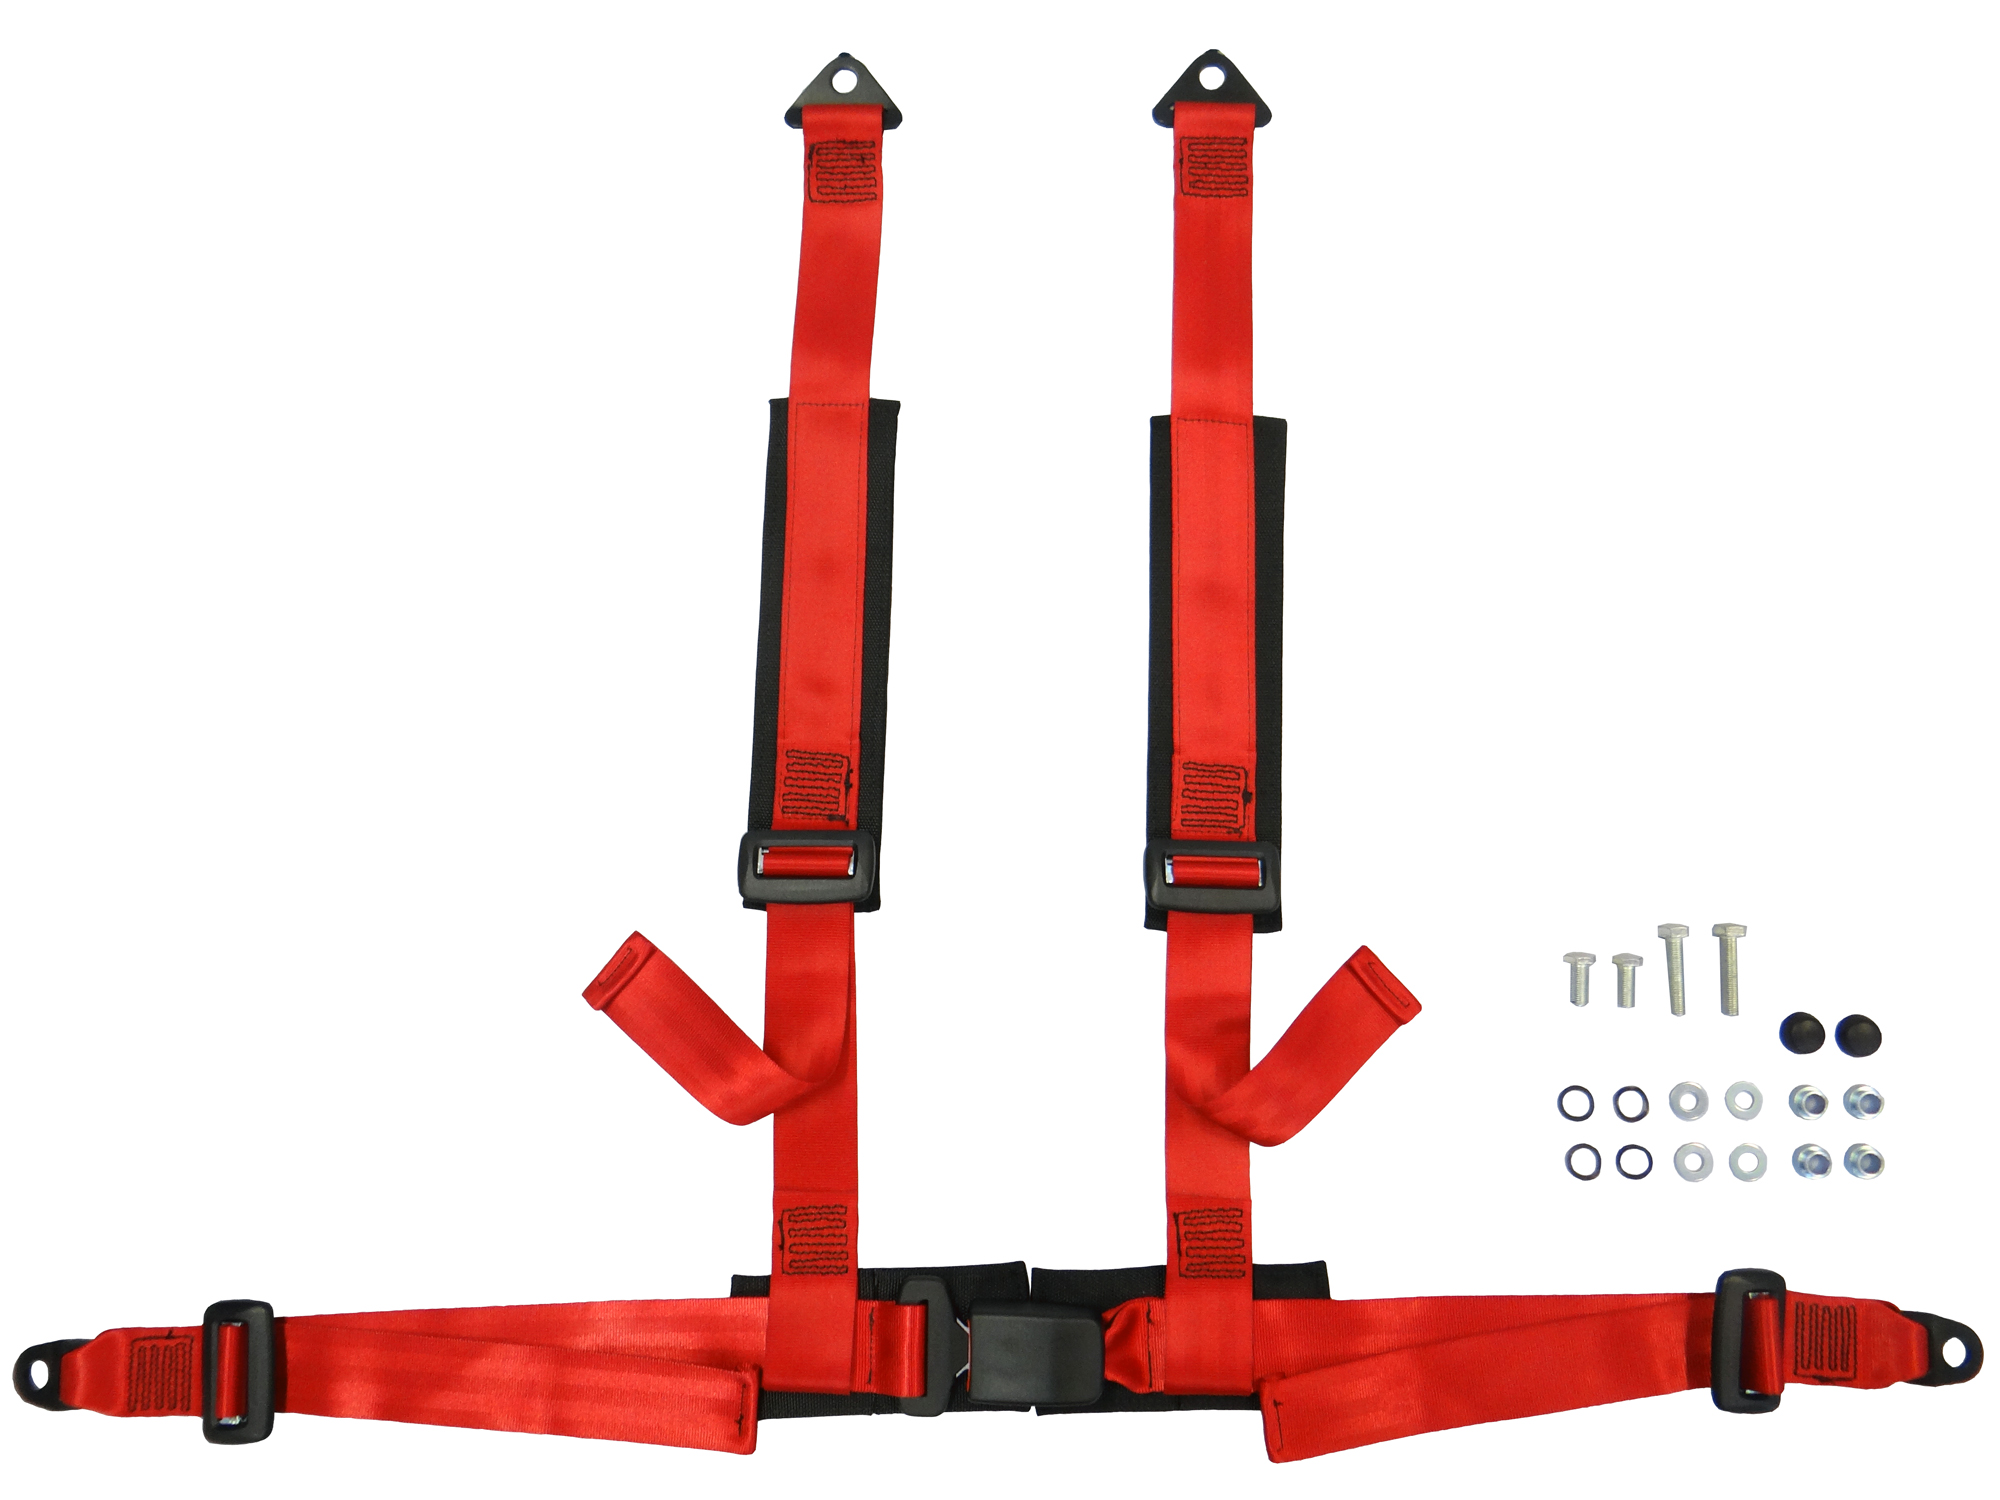 Sbs 4 Point Harness (Red) Without Flash - Anchor Plate Fixing